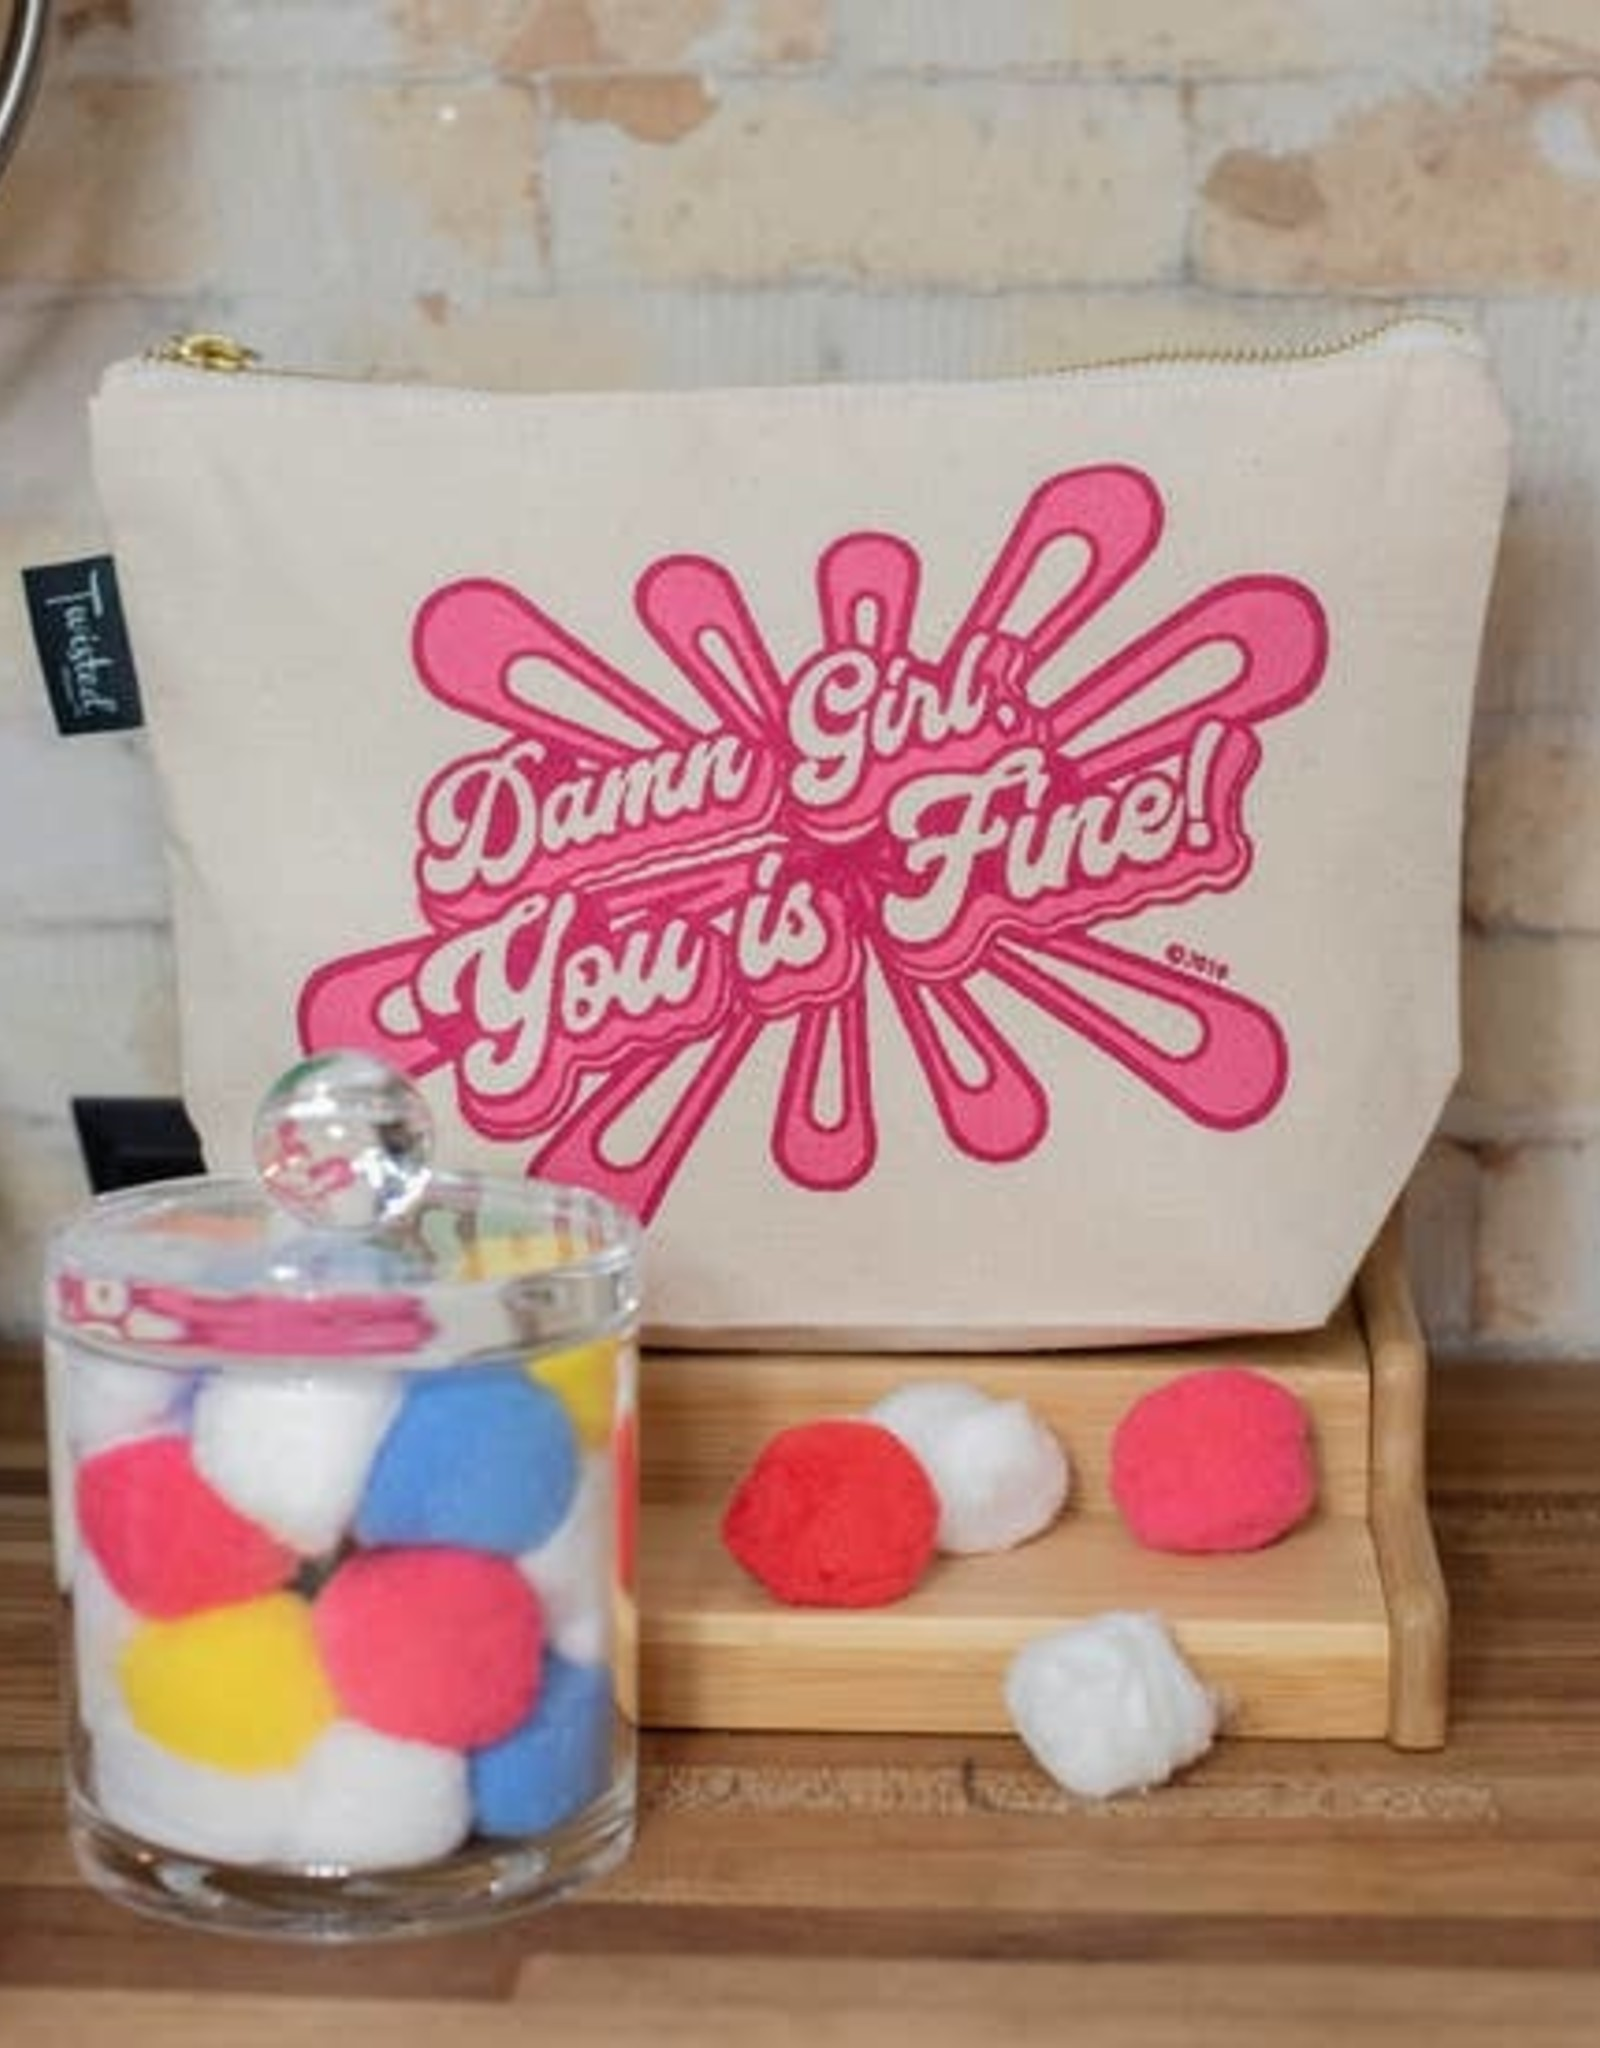 TWISTED WARES TWISTED DAMN GIRL YOU IS FINE POUCH